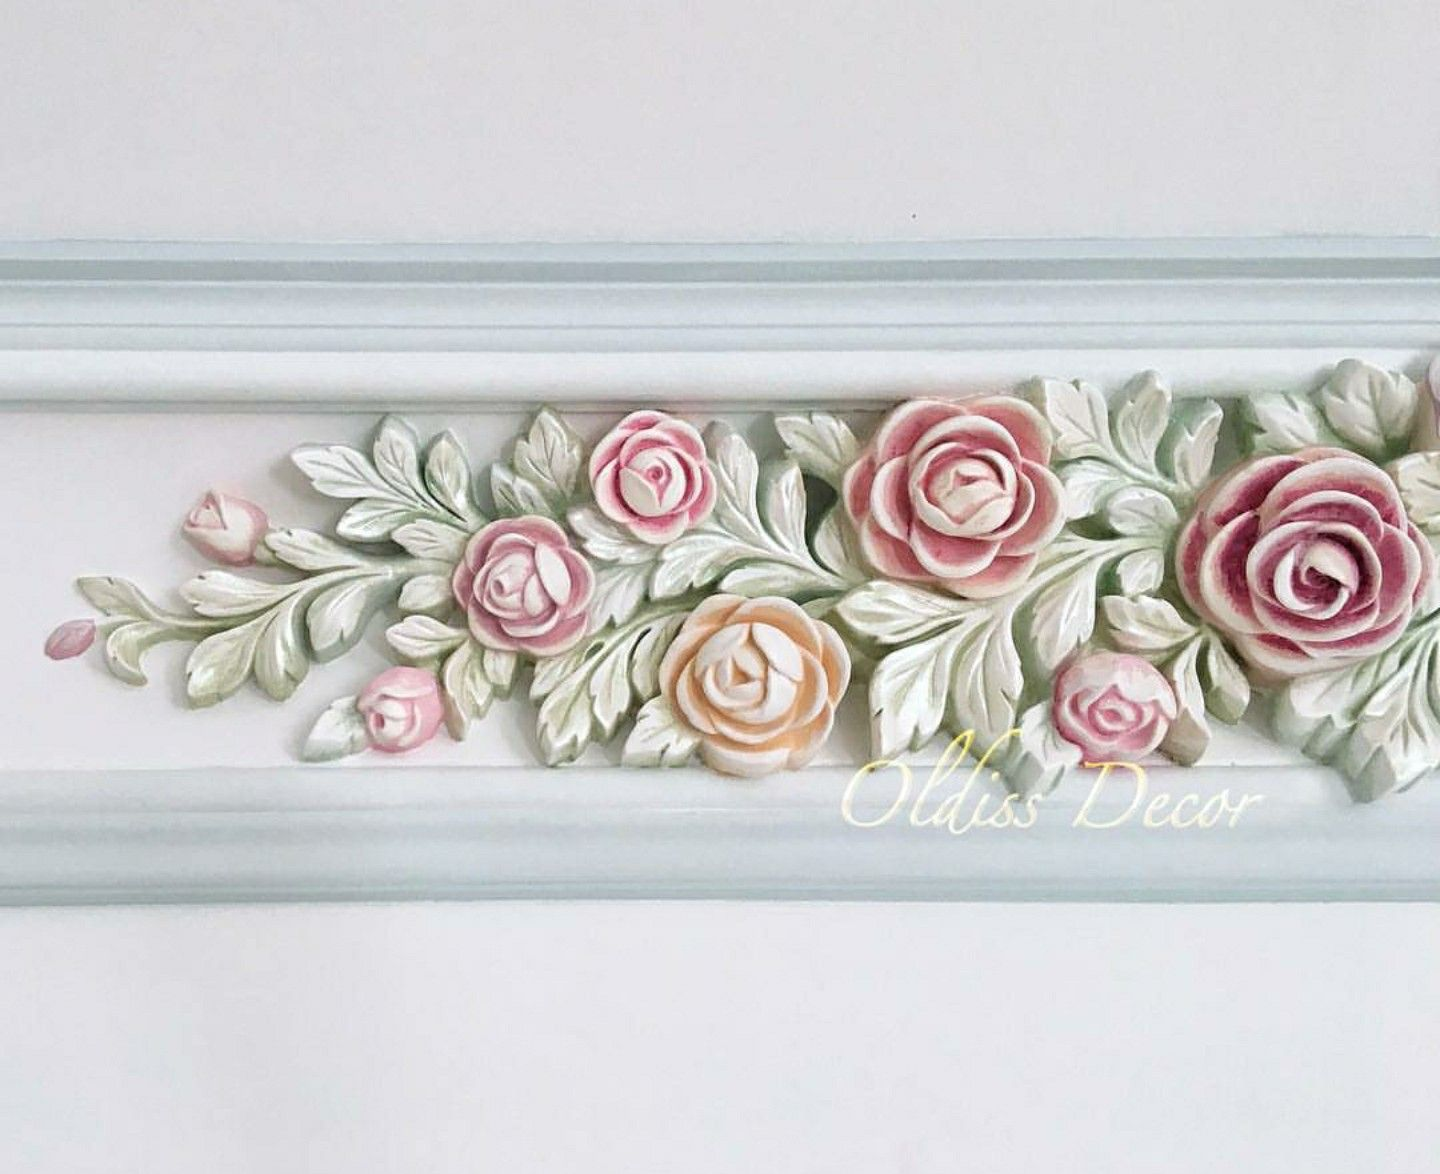 Pin by alarah17 on Home decor (With images) | Elegant ...